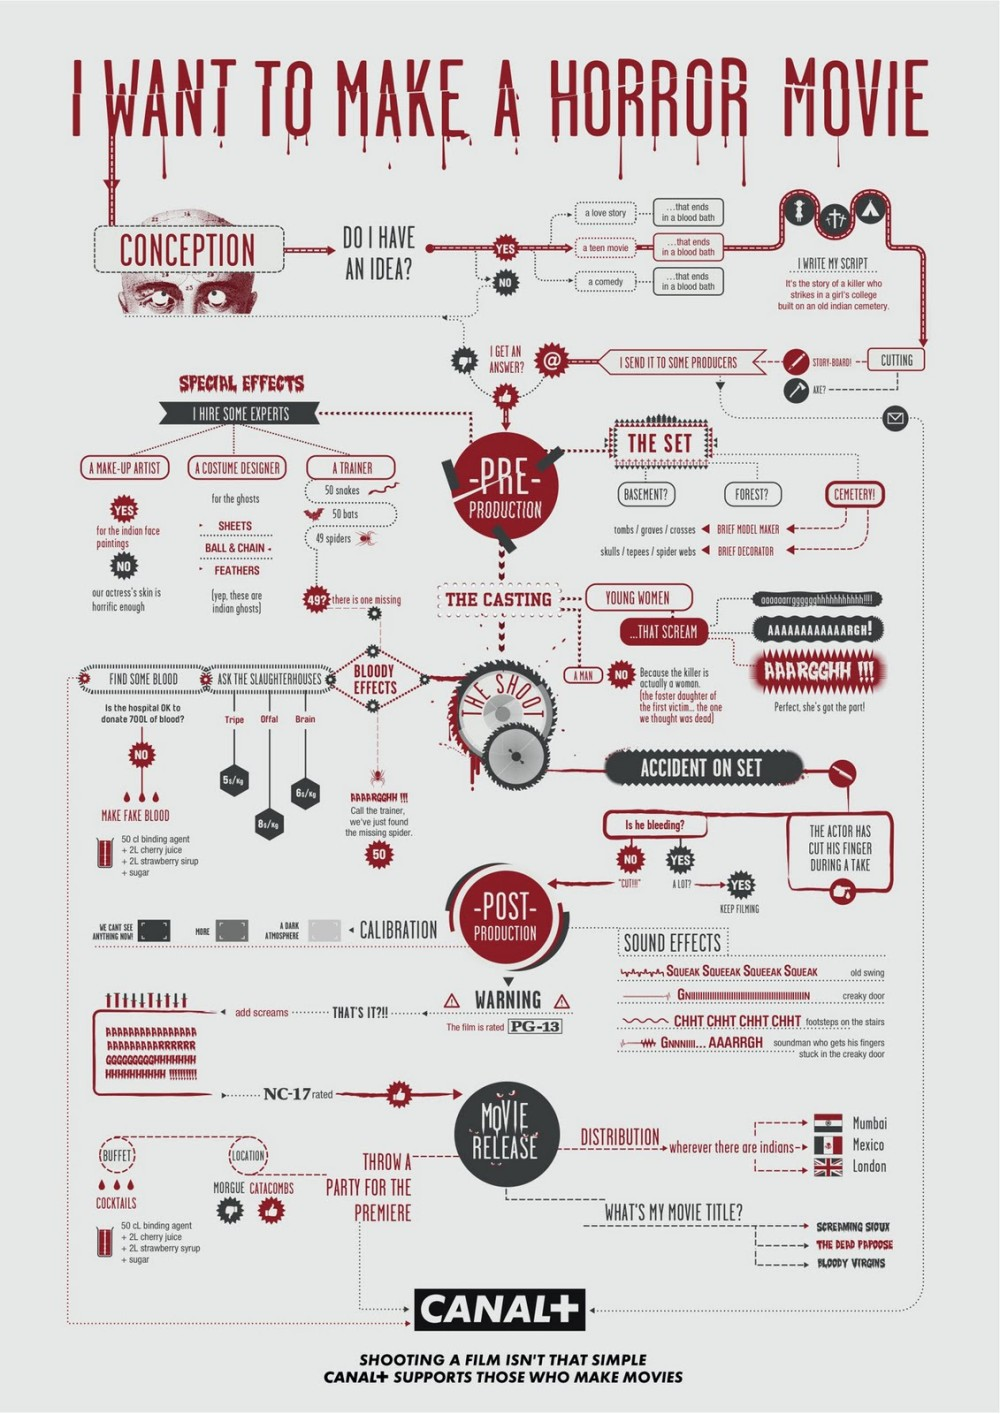 Infographic courtesy of Canal+